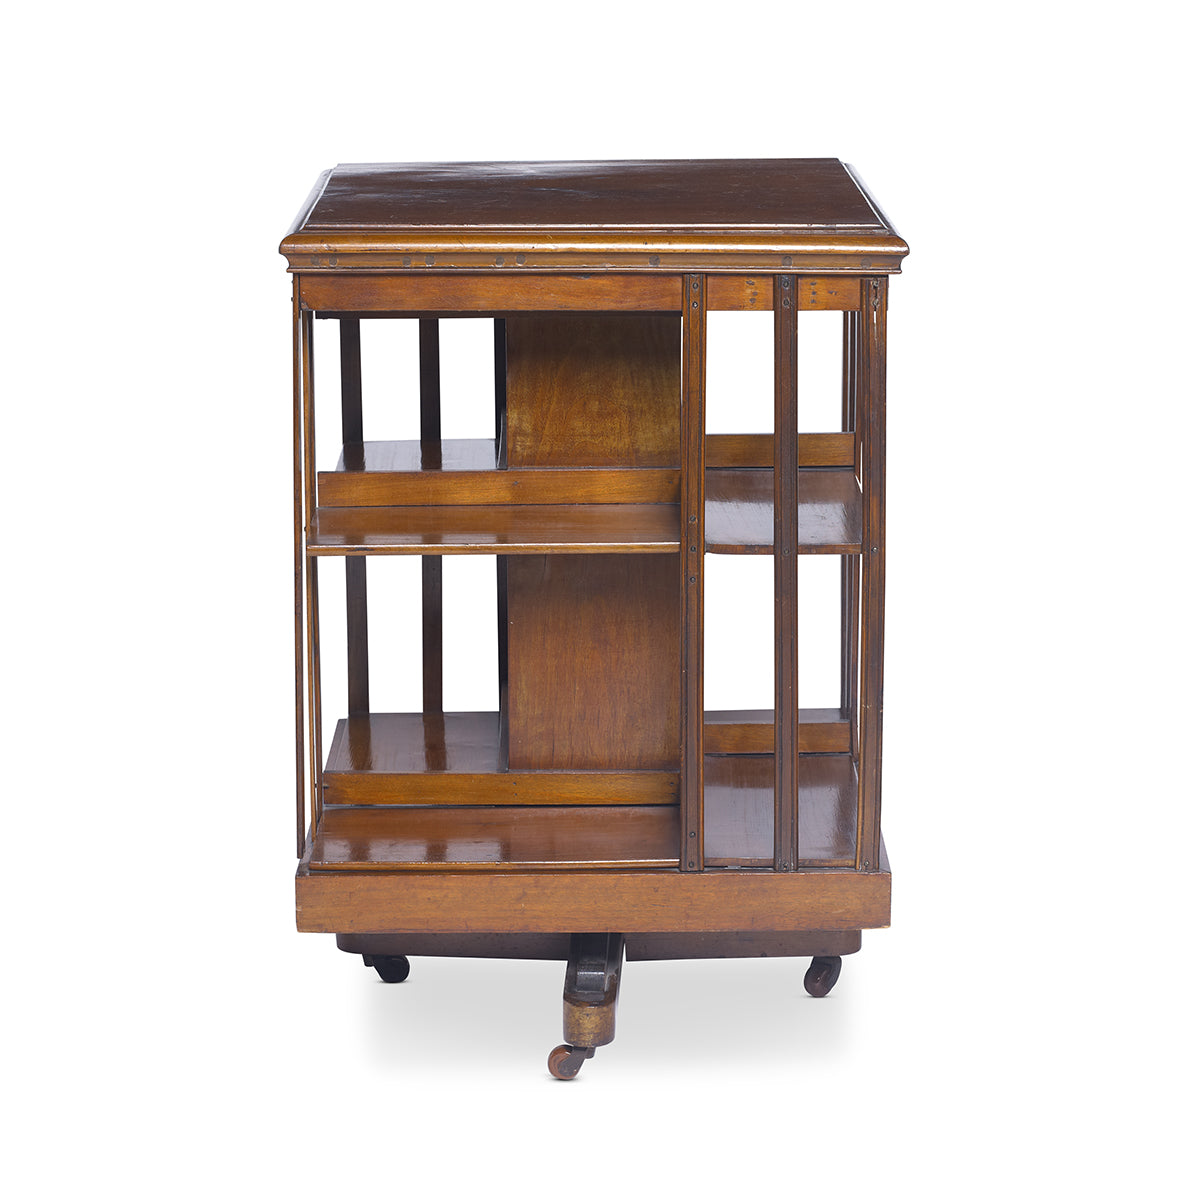 A very good quality Virginian-walnut two tier revolving bookcase, English Circa 1900